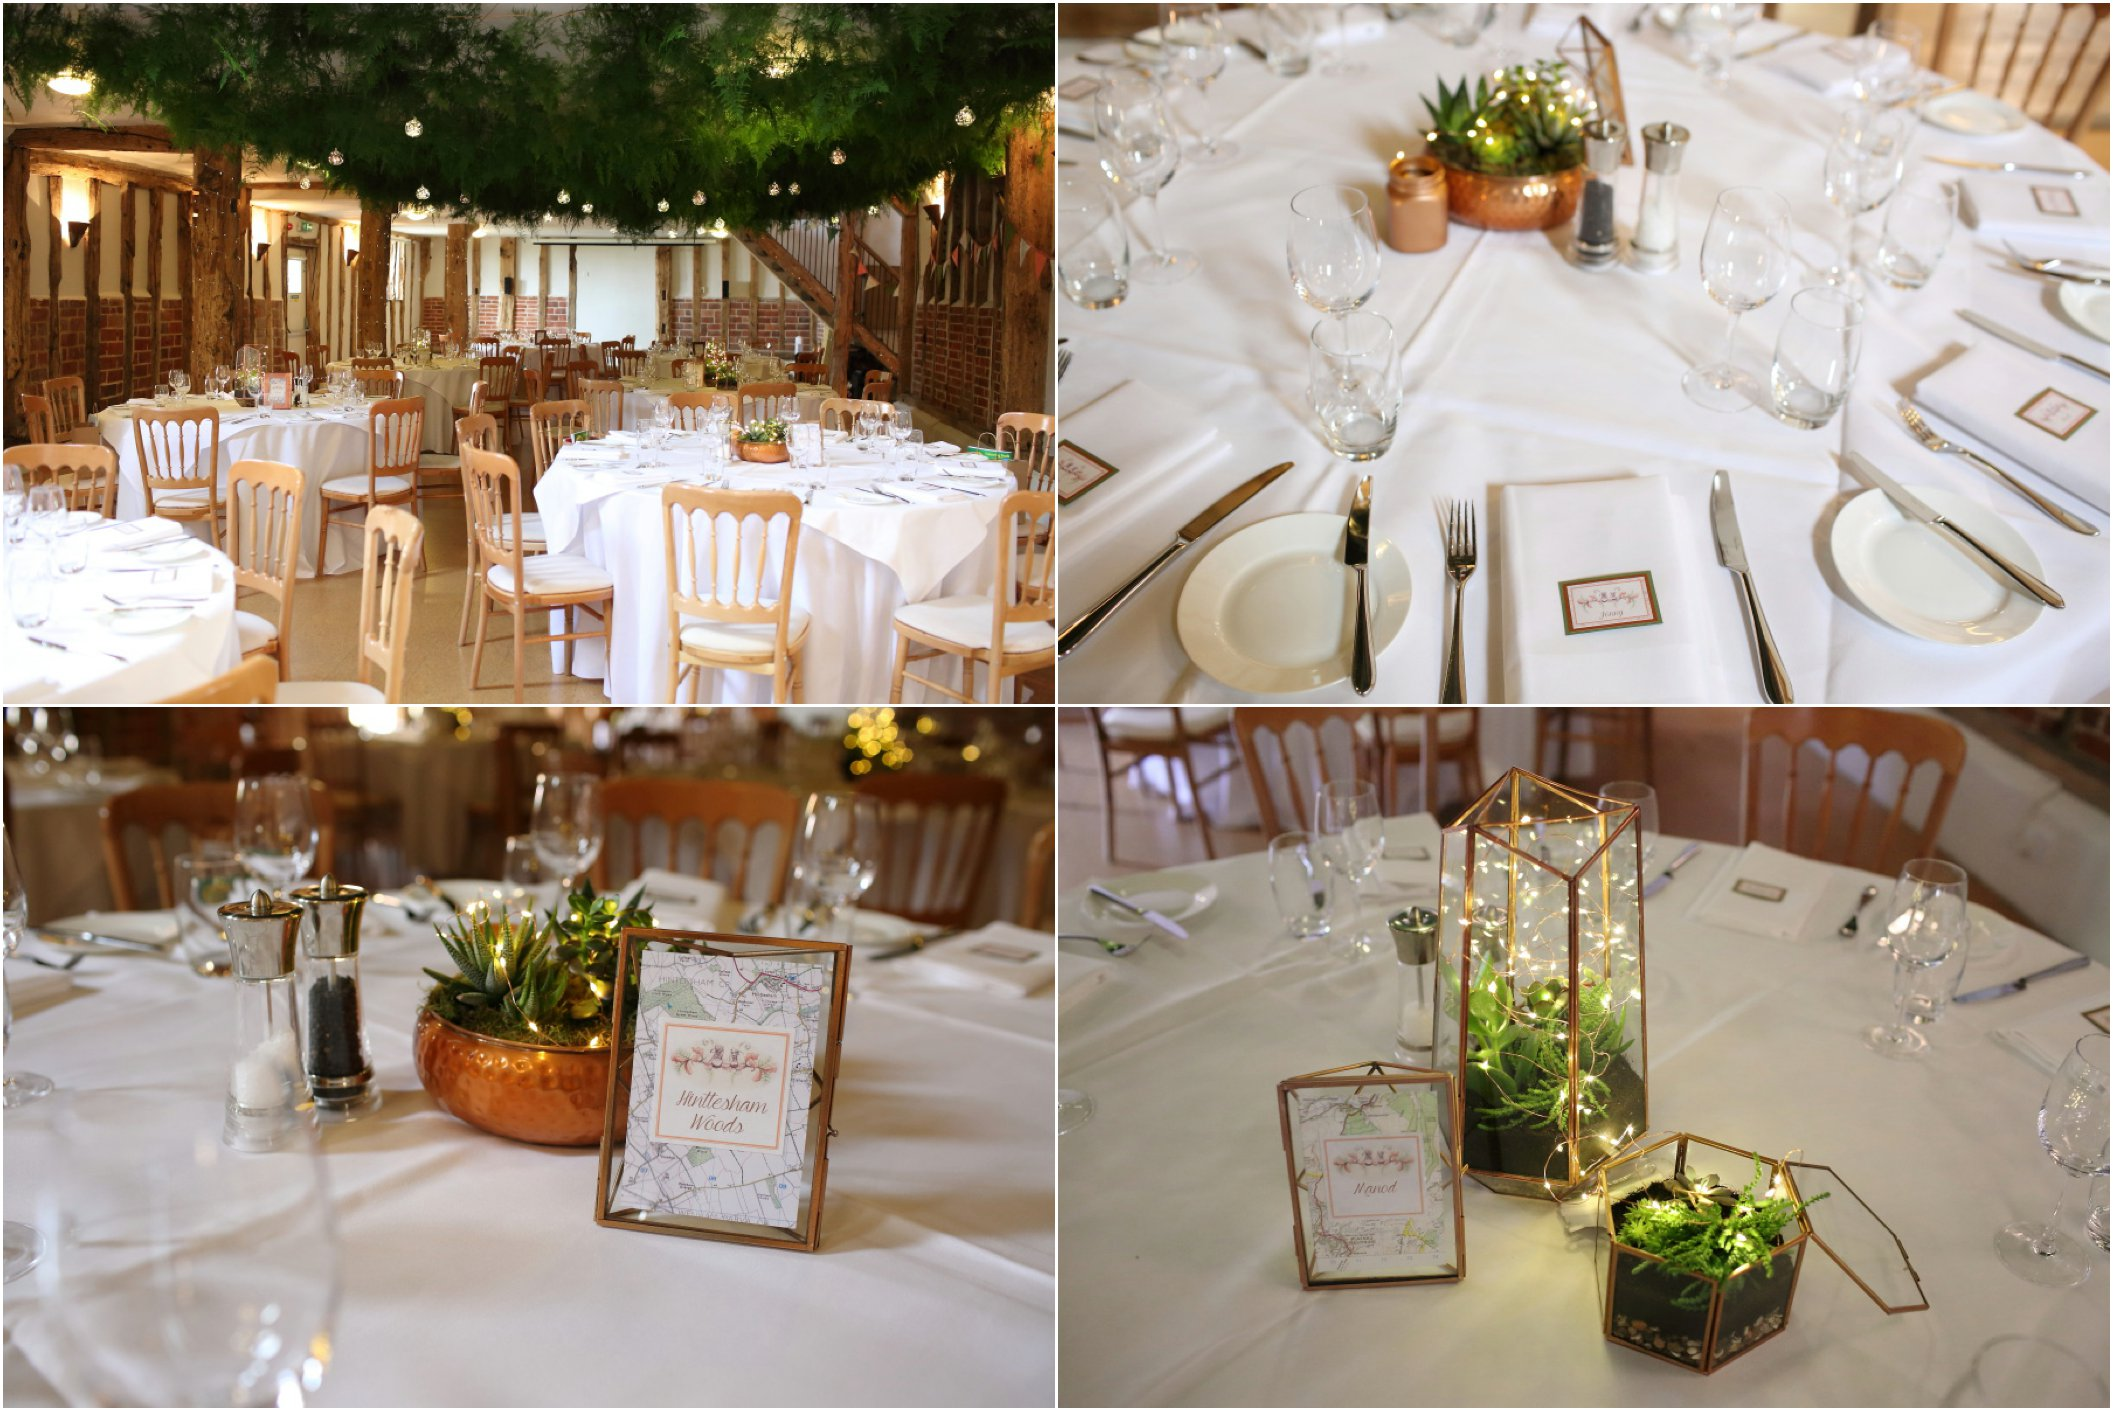 white and copper dectorations at Moreves Barn Suffolk. Green foliage canopy indoors above tables